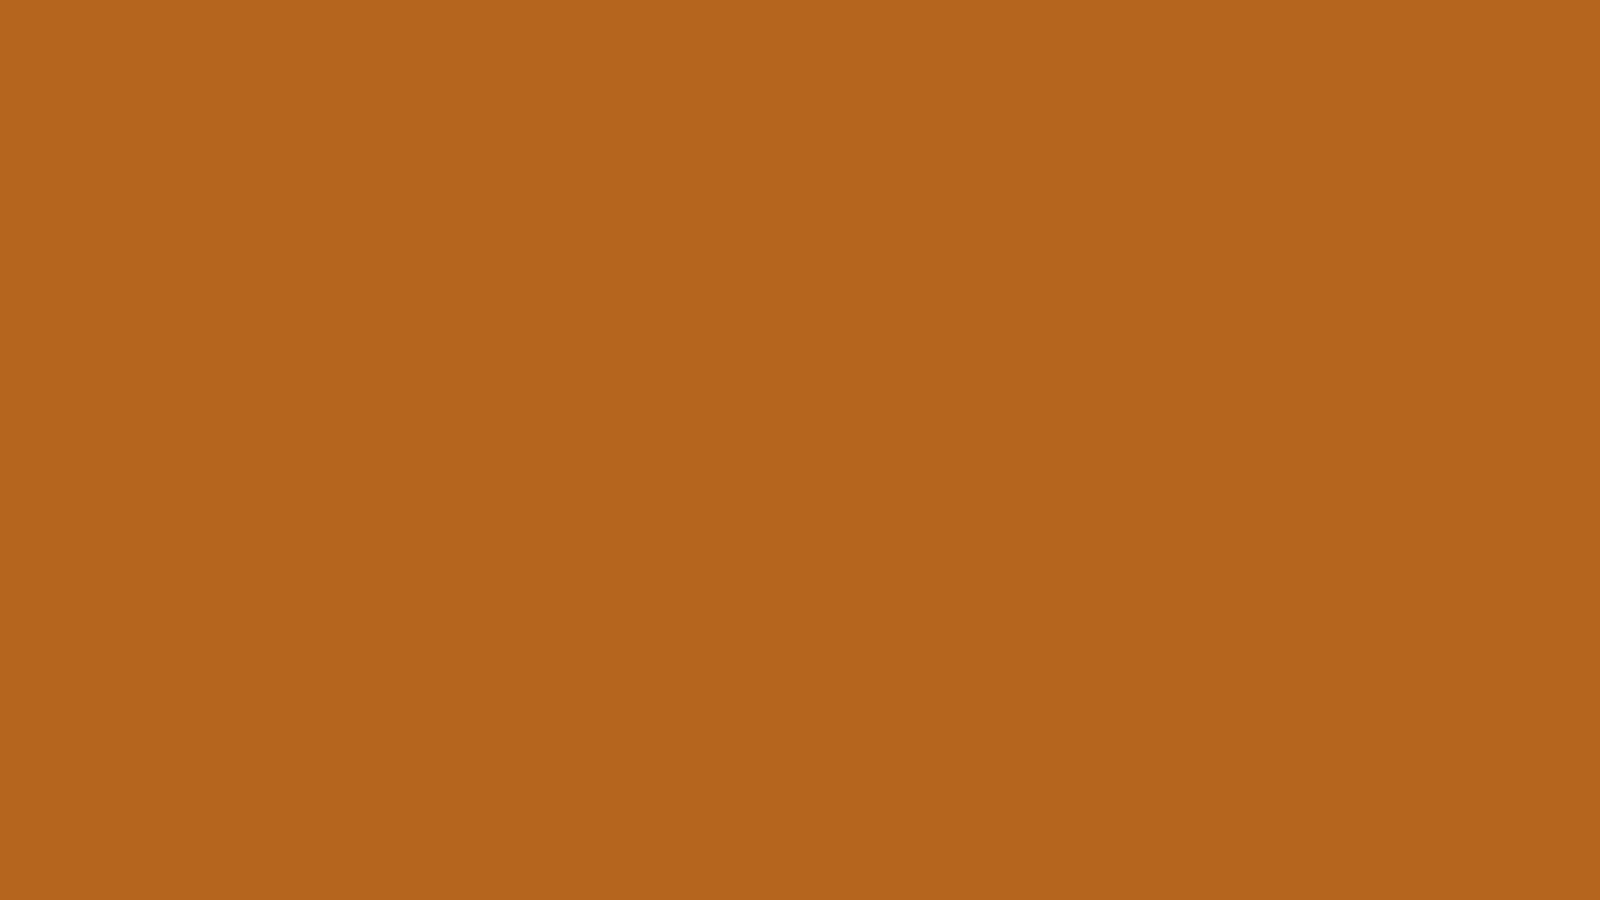 X900 Light Brown Solid Color Background